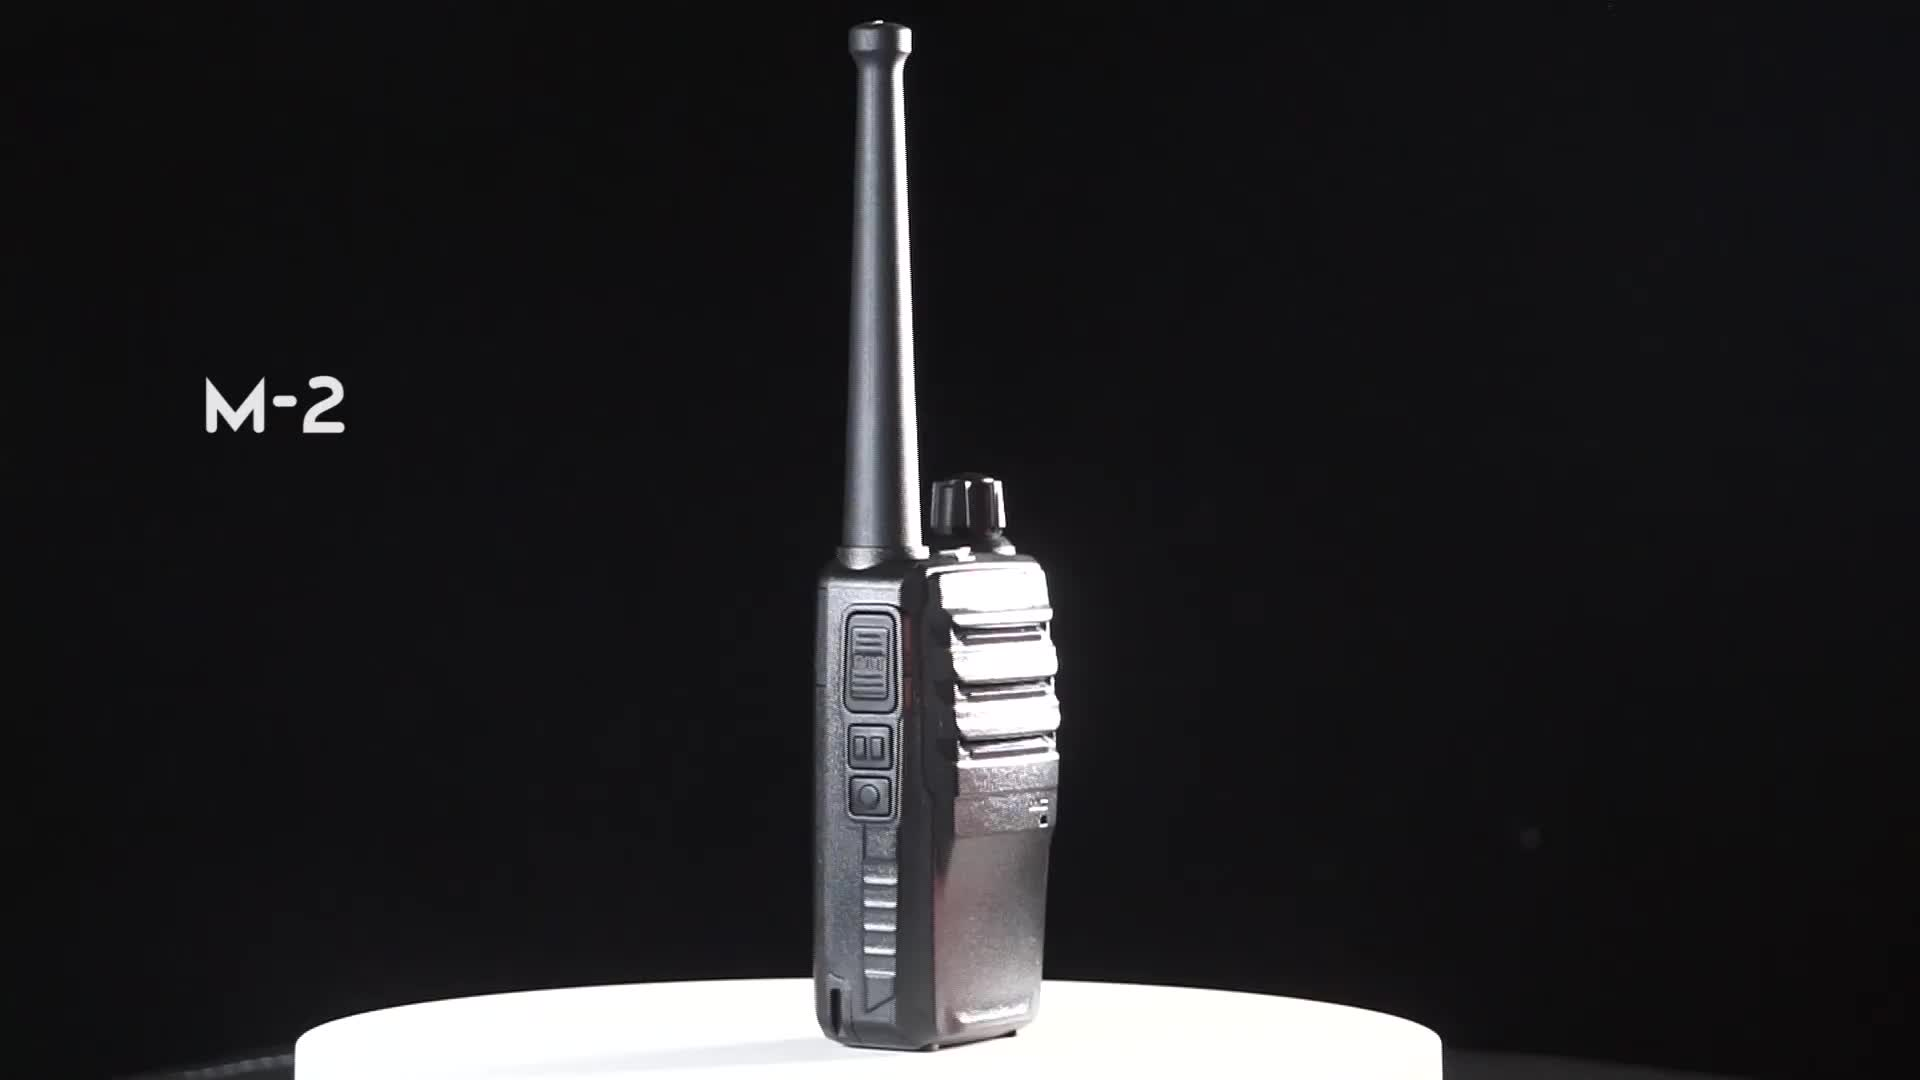 MSTAR M2 mini pocket 0.5-watt FRS two-way walkie talkie